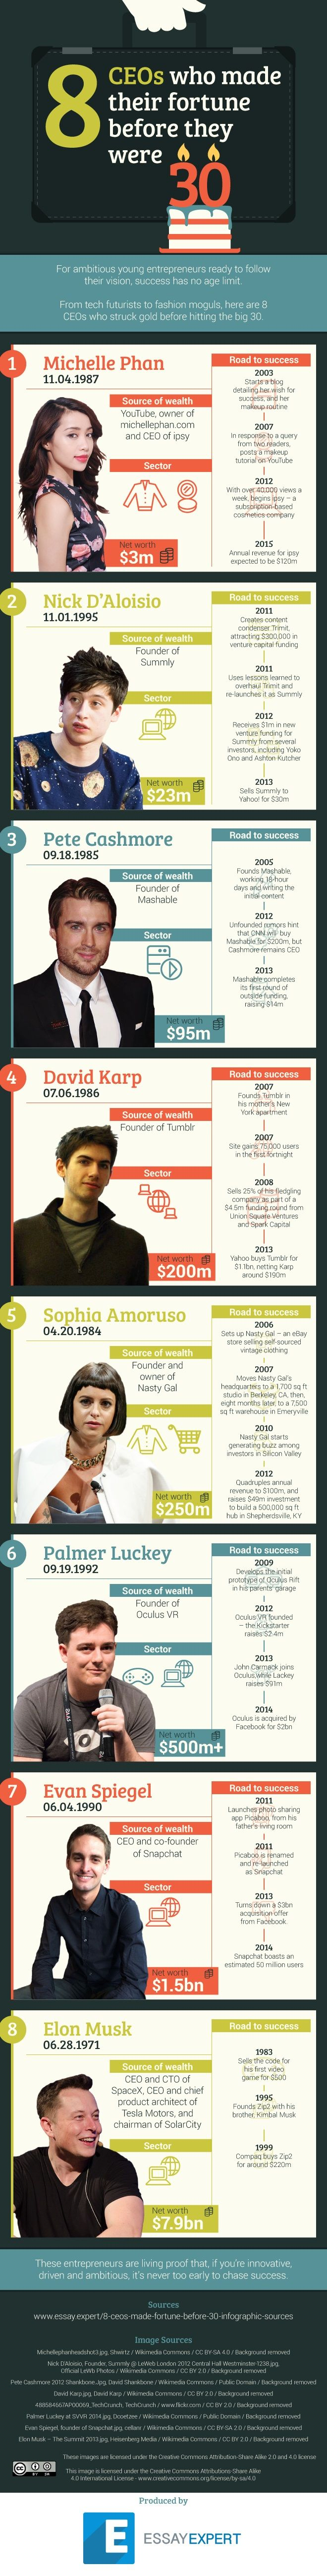 8 CEOs Who Became Self-Made Millionaires Before Turning 30.  Here is some inspiration for all you fellow entrepreneurs and startups founders out there.  This infographic shows eight CEOs who made their fortunes before reaching the ripe old age of 30.